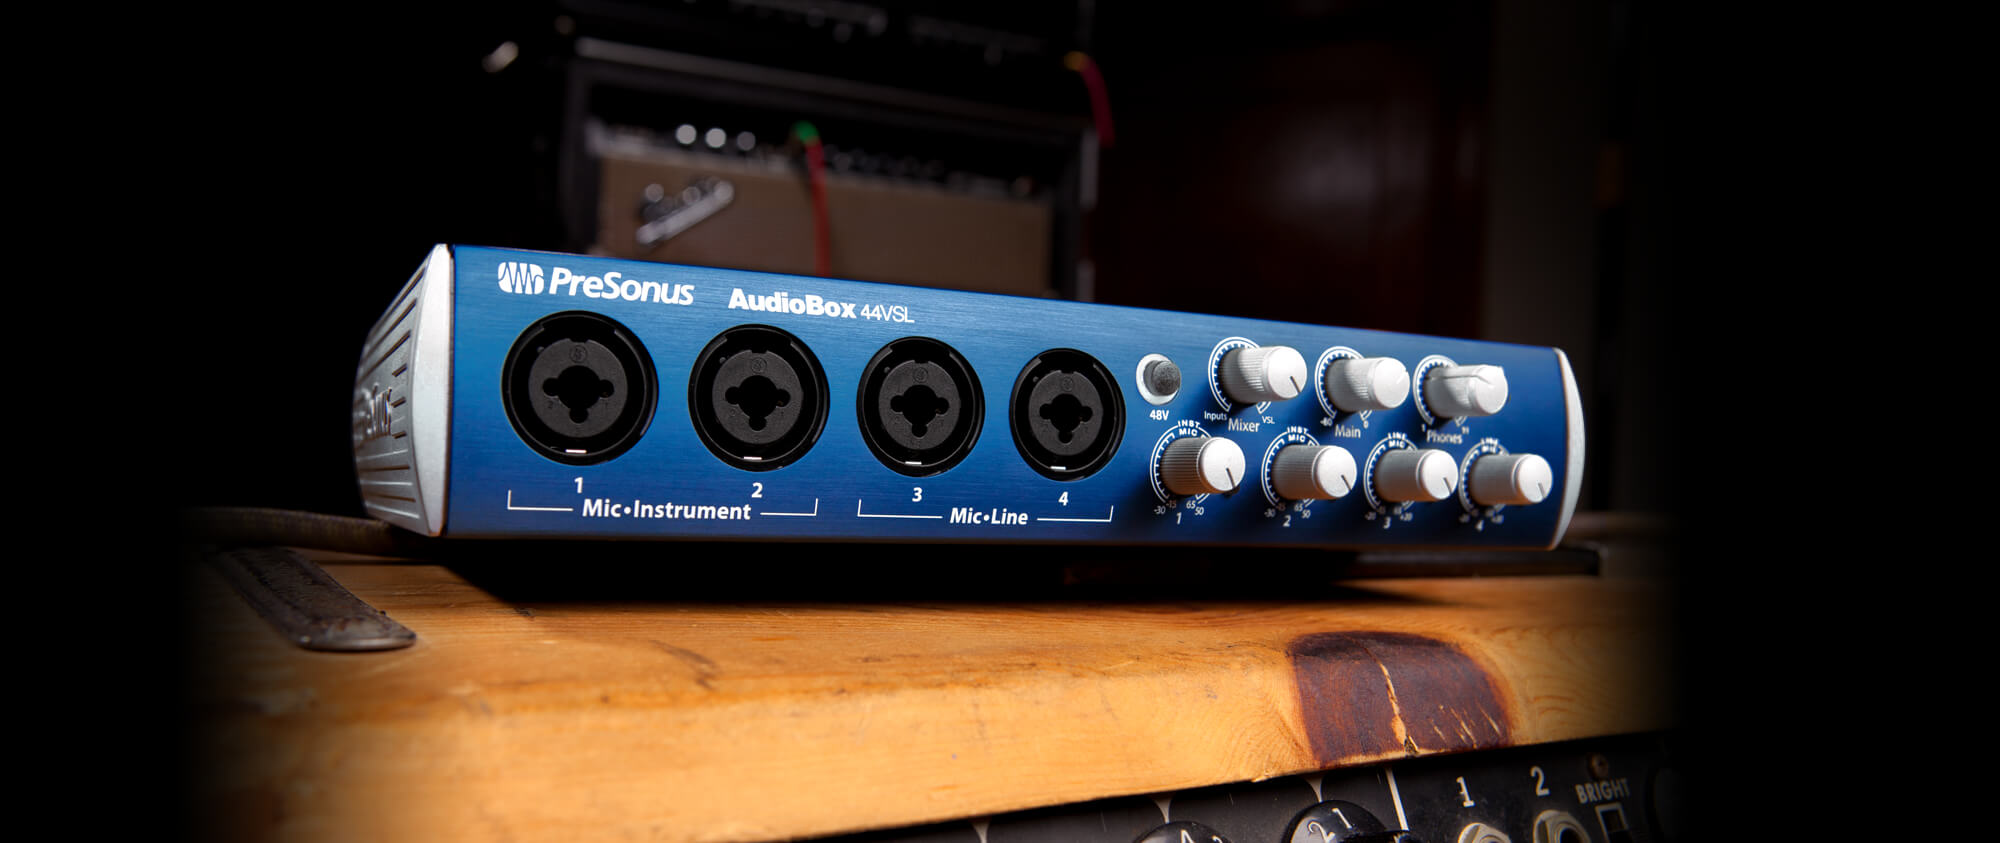 Audiobox 44vsl Presonus Stereo Mixer For Microphone With 2 Channels